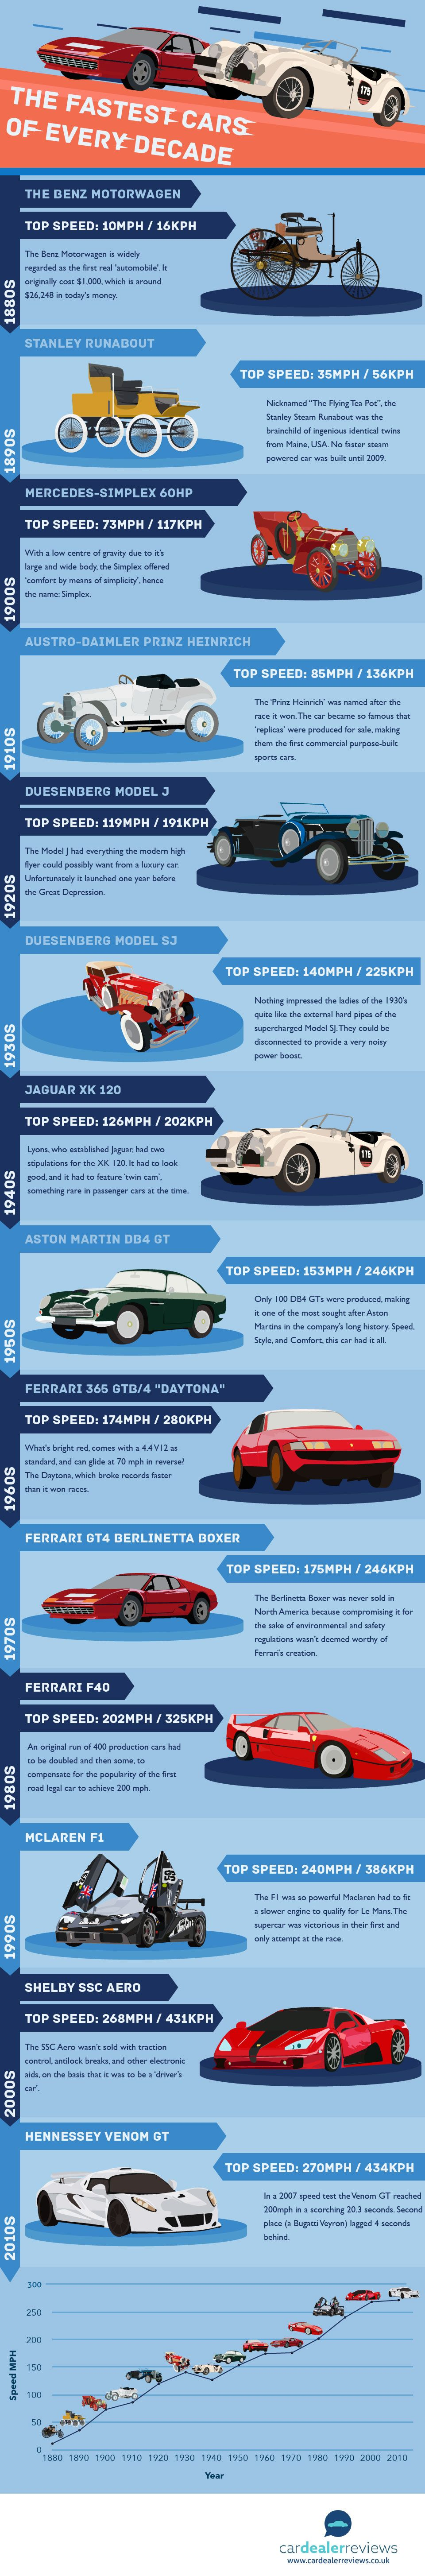 Fastest Cars of Every Decade